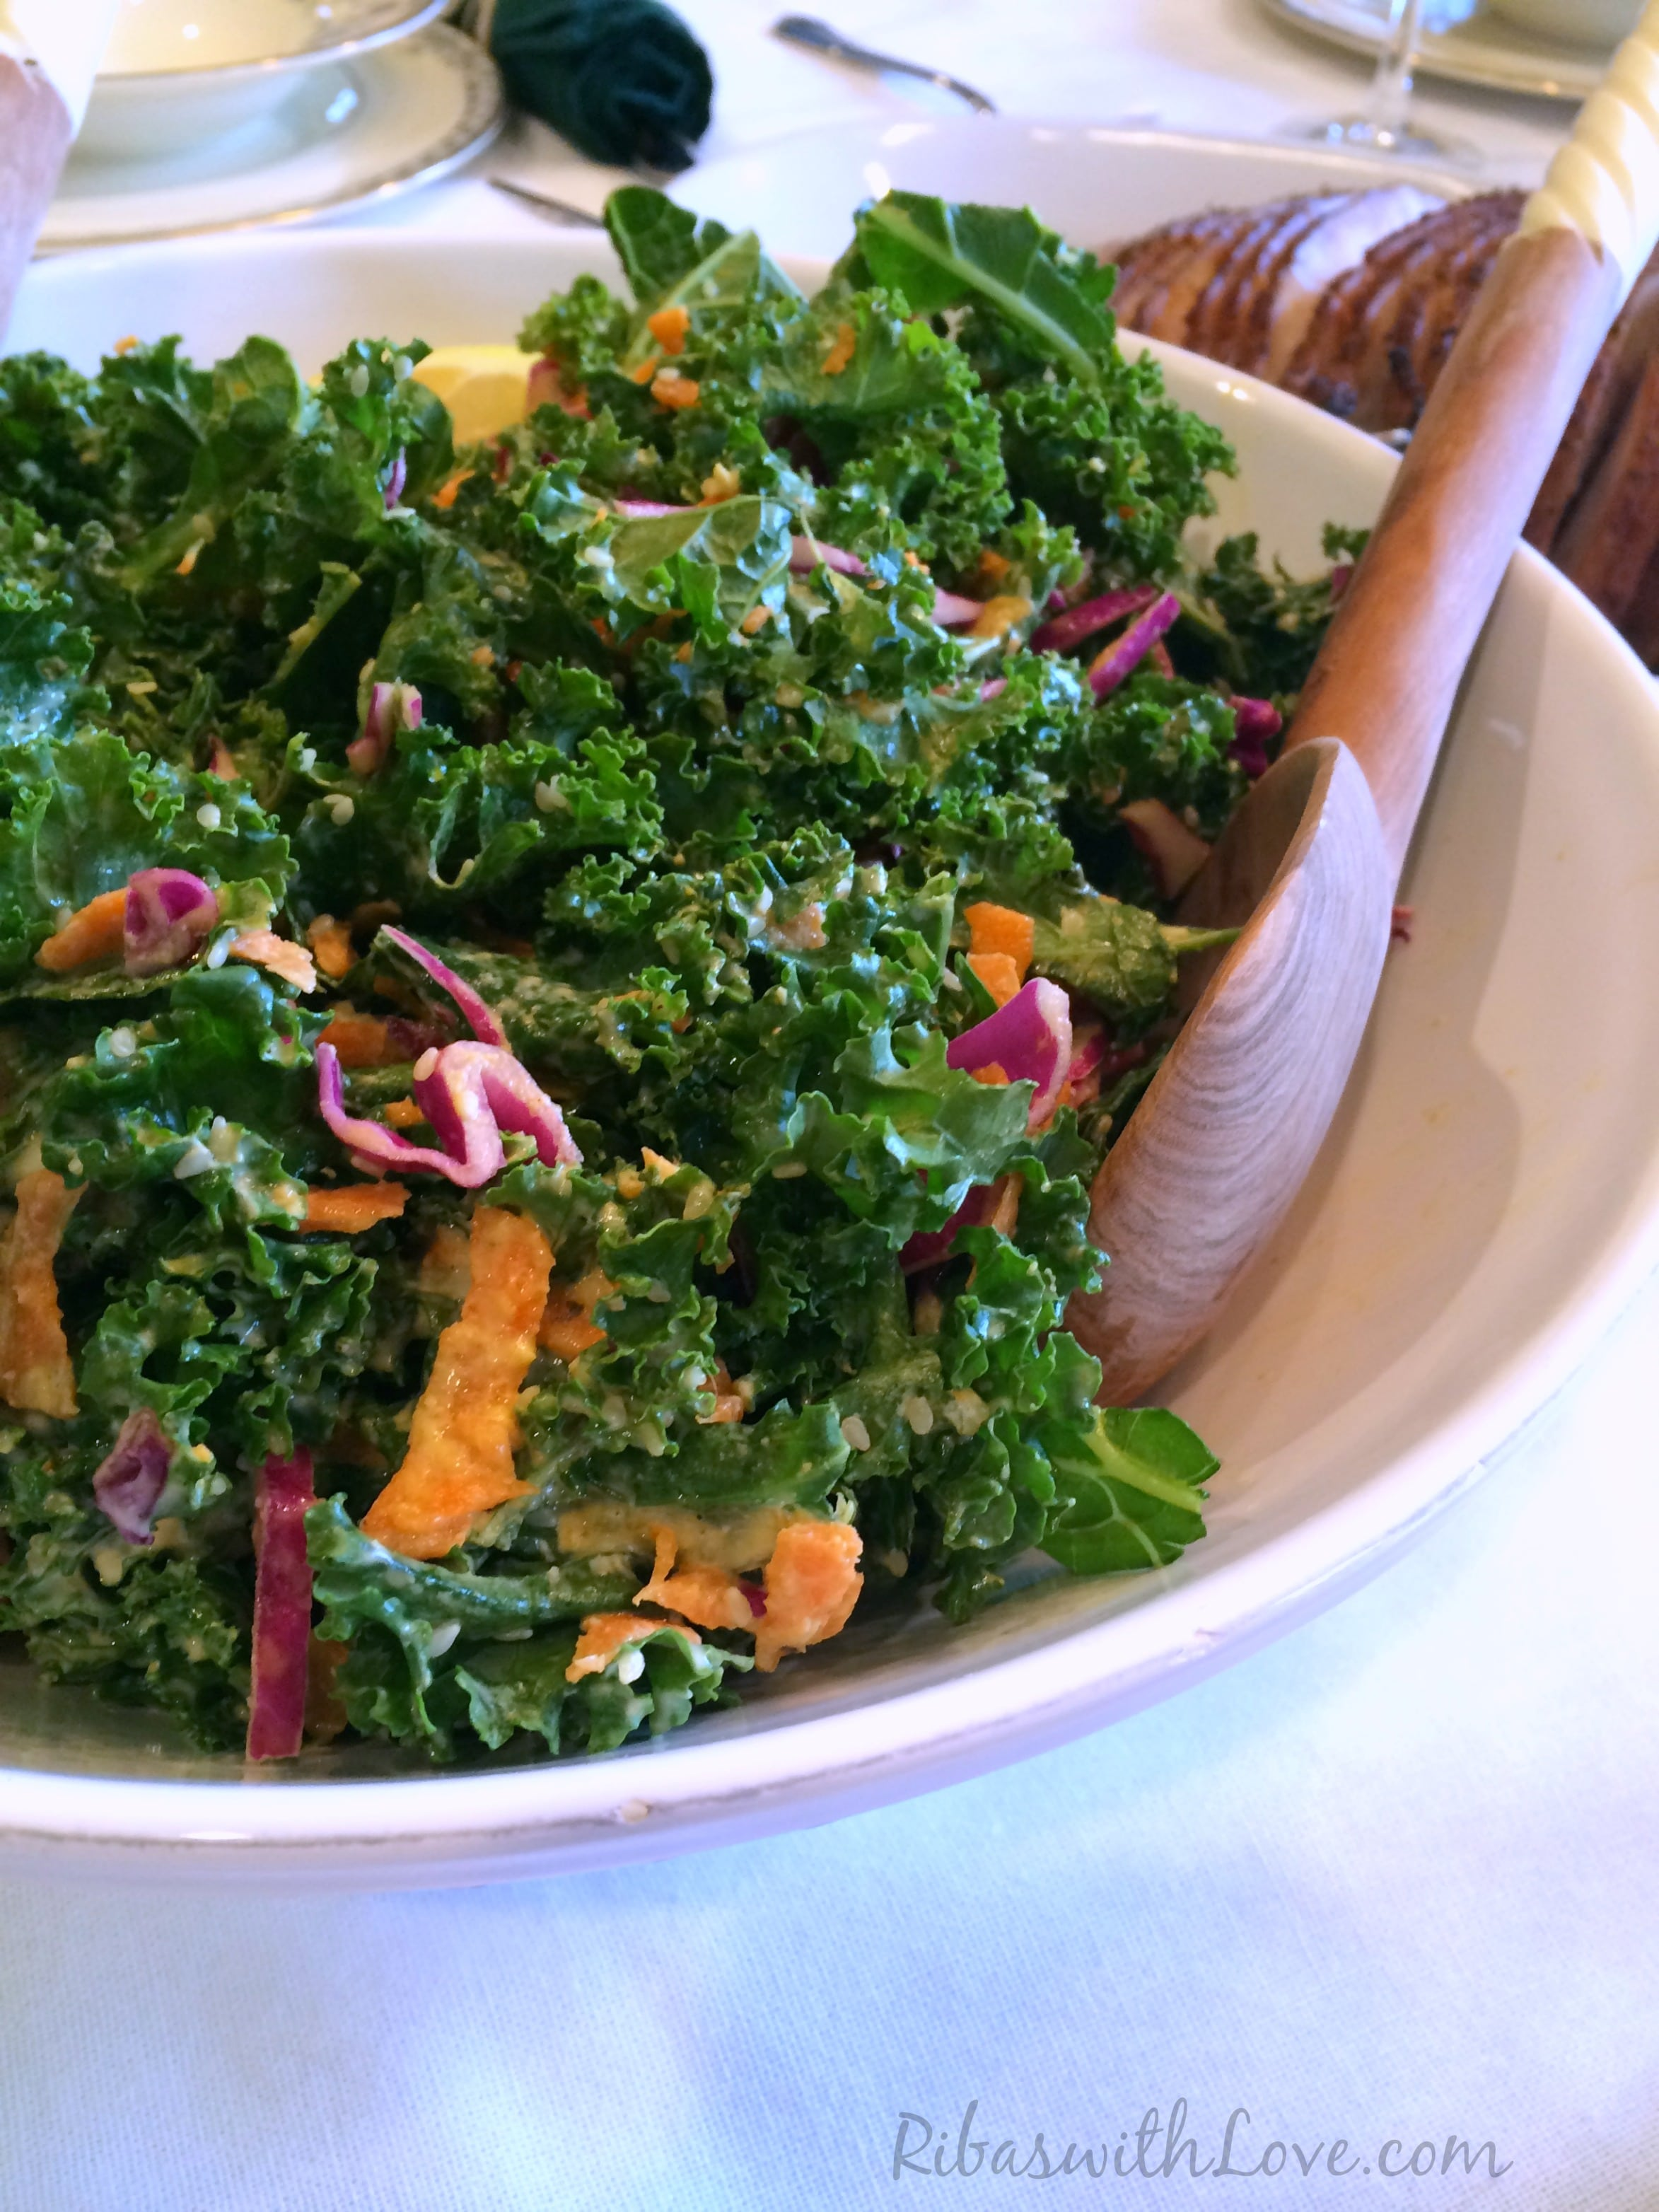 Kale salad with sweet and creamy dressing, so delicious and full of health benefits.